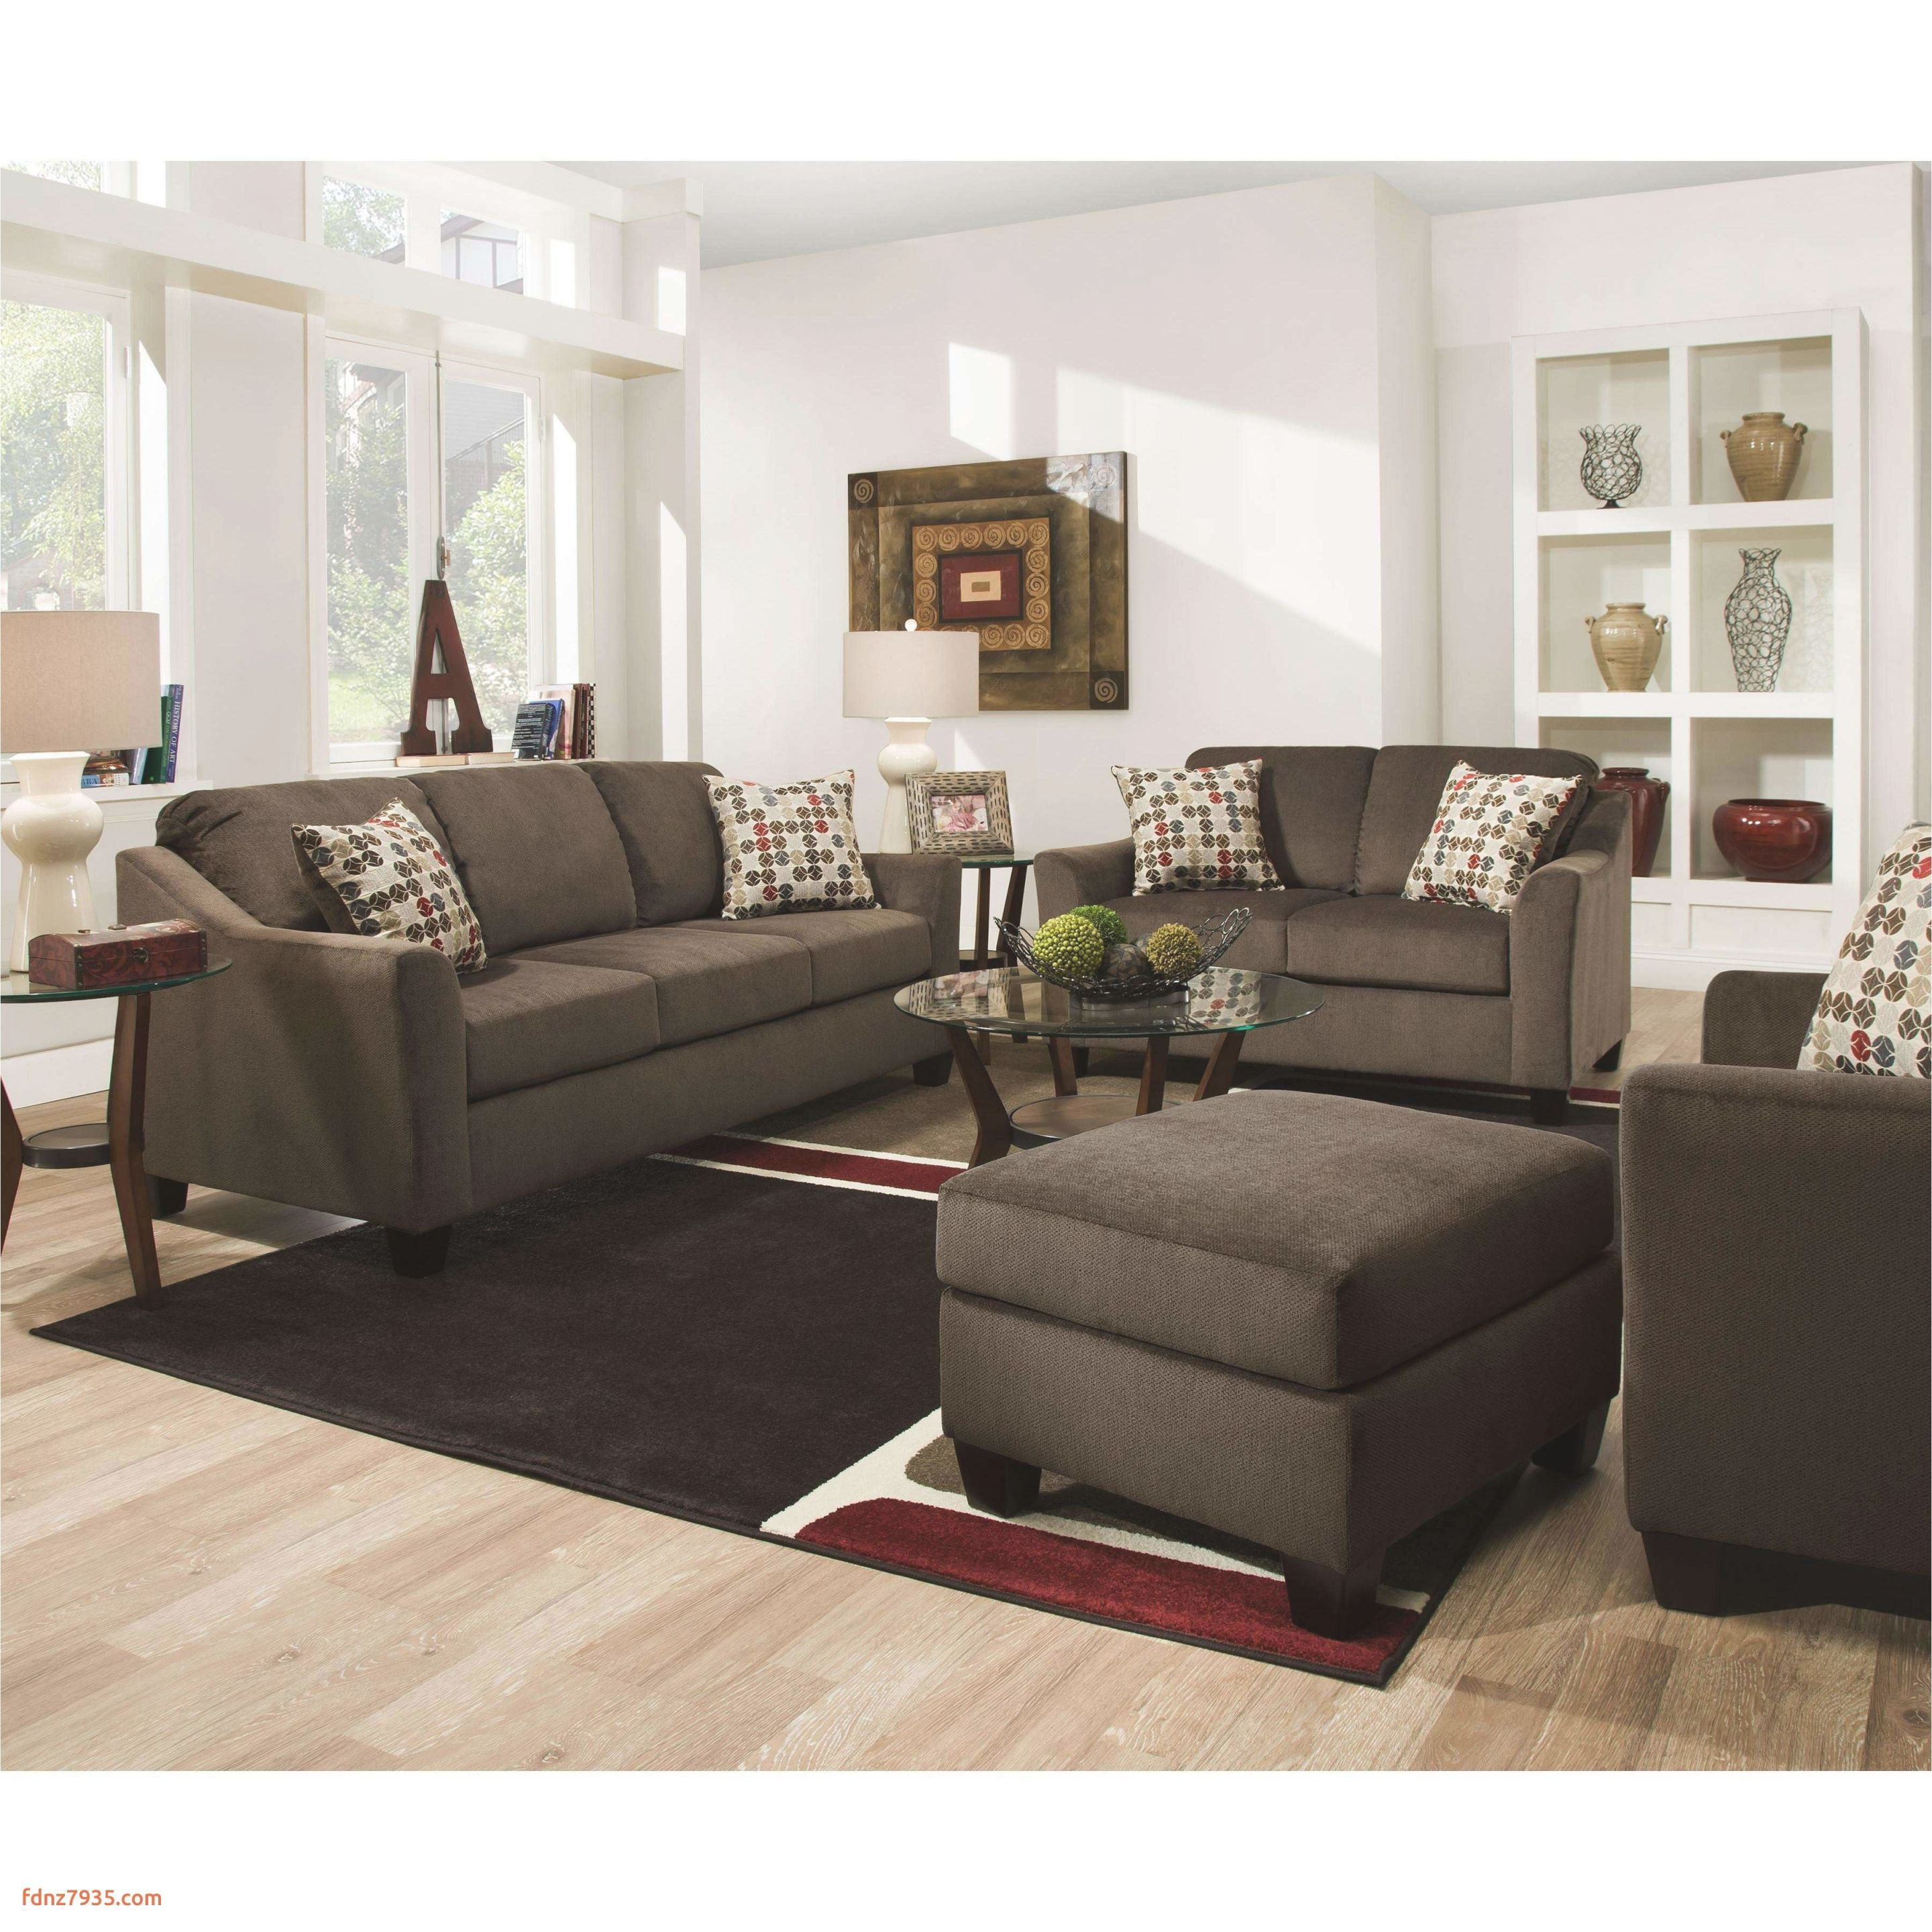 29 Latest Taupe Sofa With African Decor Ideas Wallpaper throughout Best of African Decor Living Room